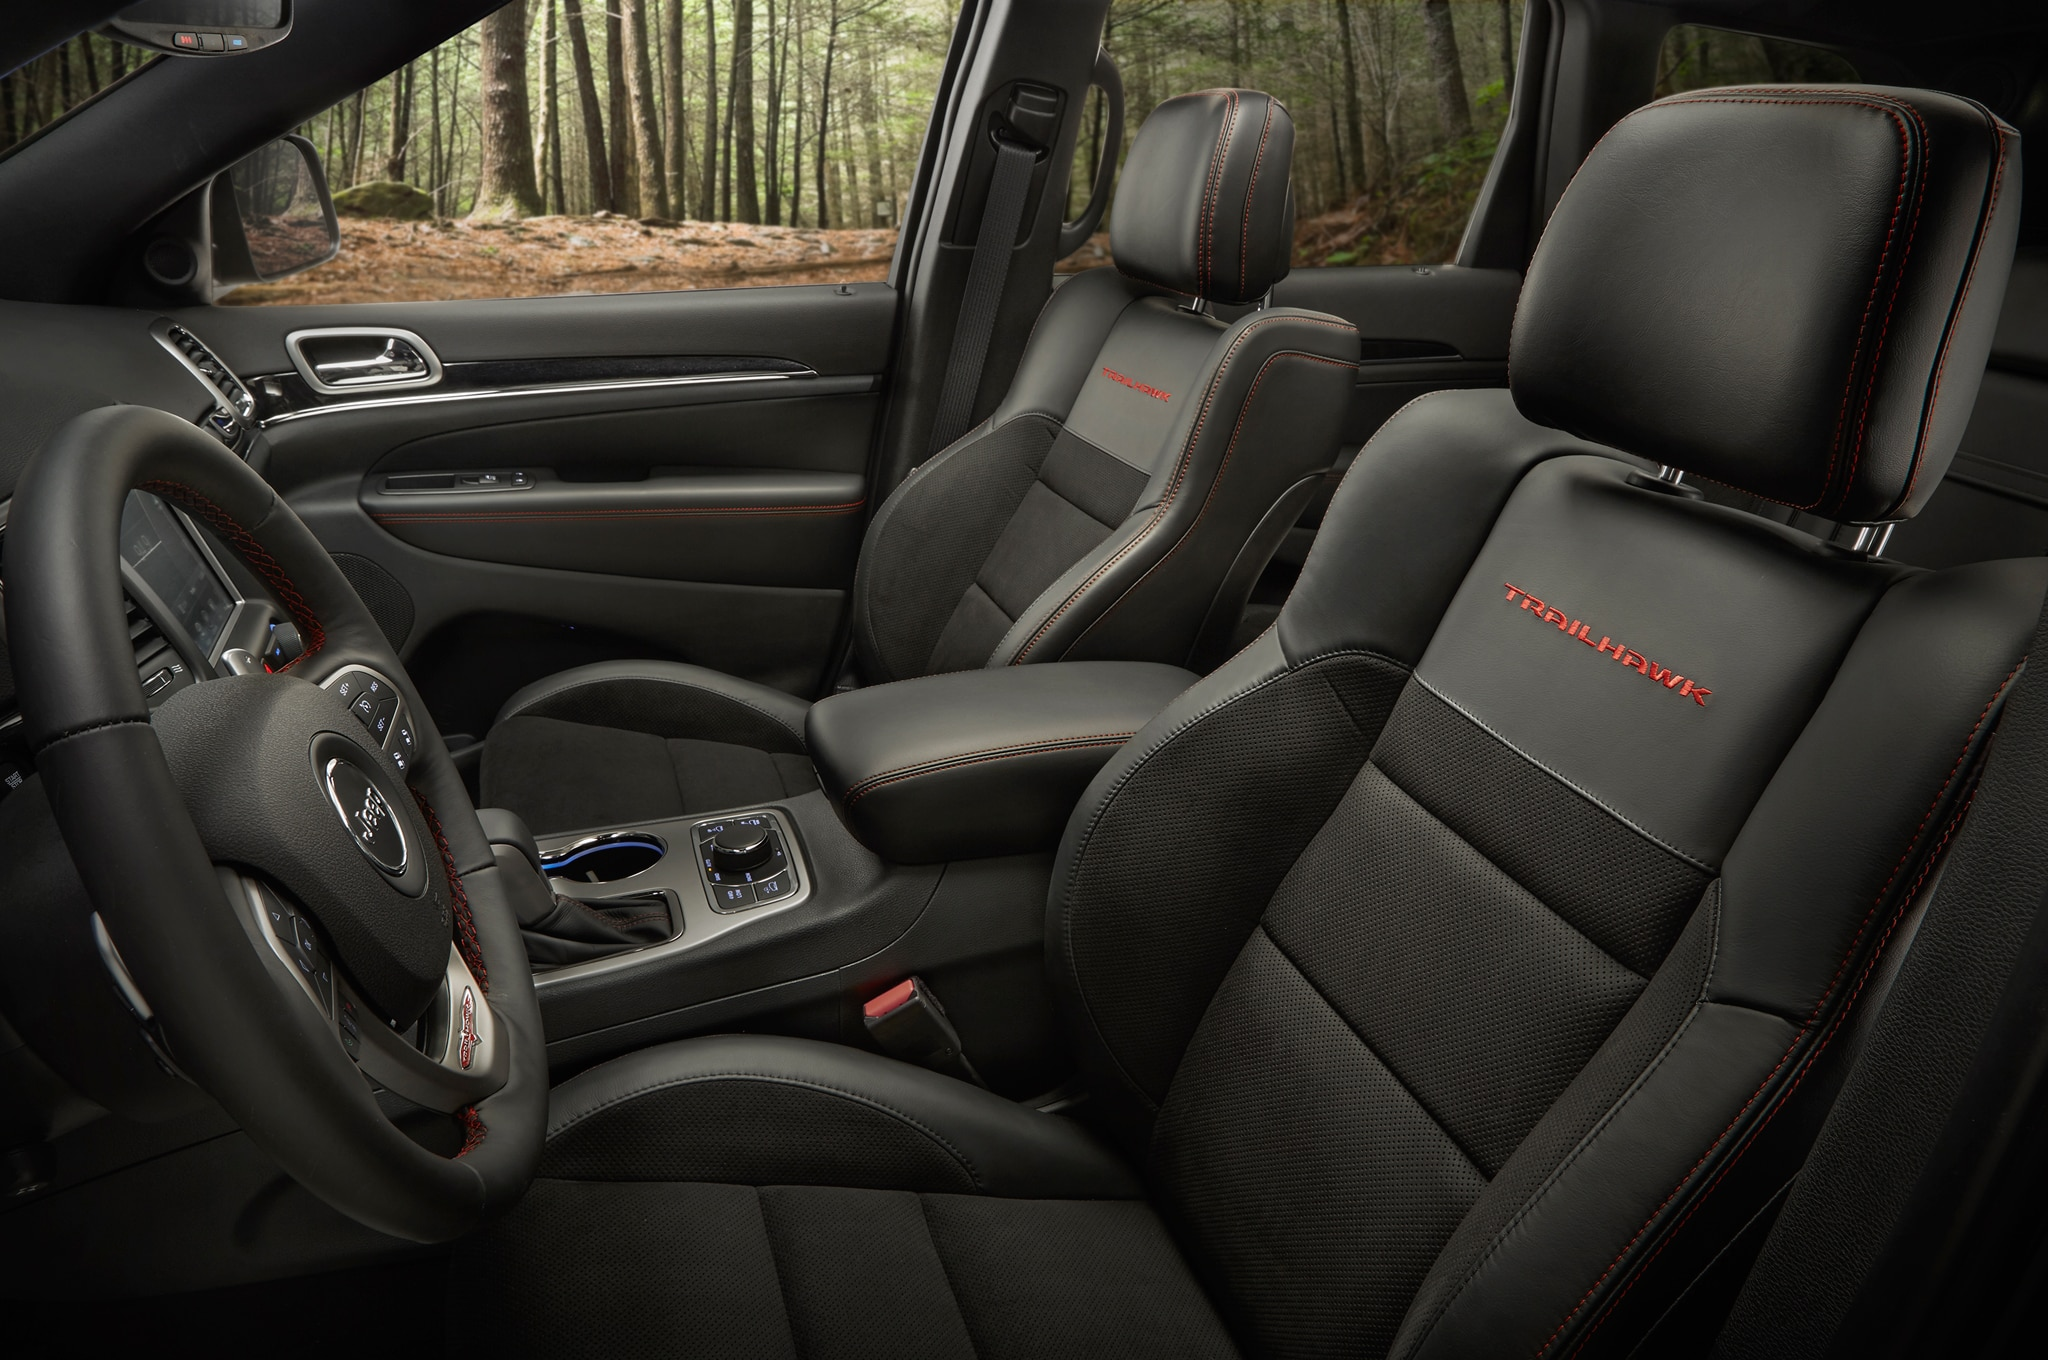 2017 jeep grand cherokee adds trailhawk updates summit - 2017 jeep grand cherokee interior colors ...